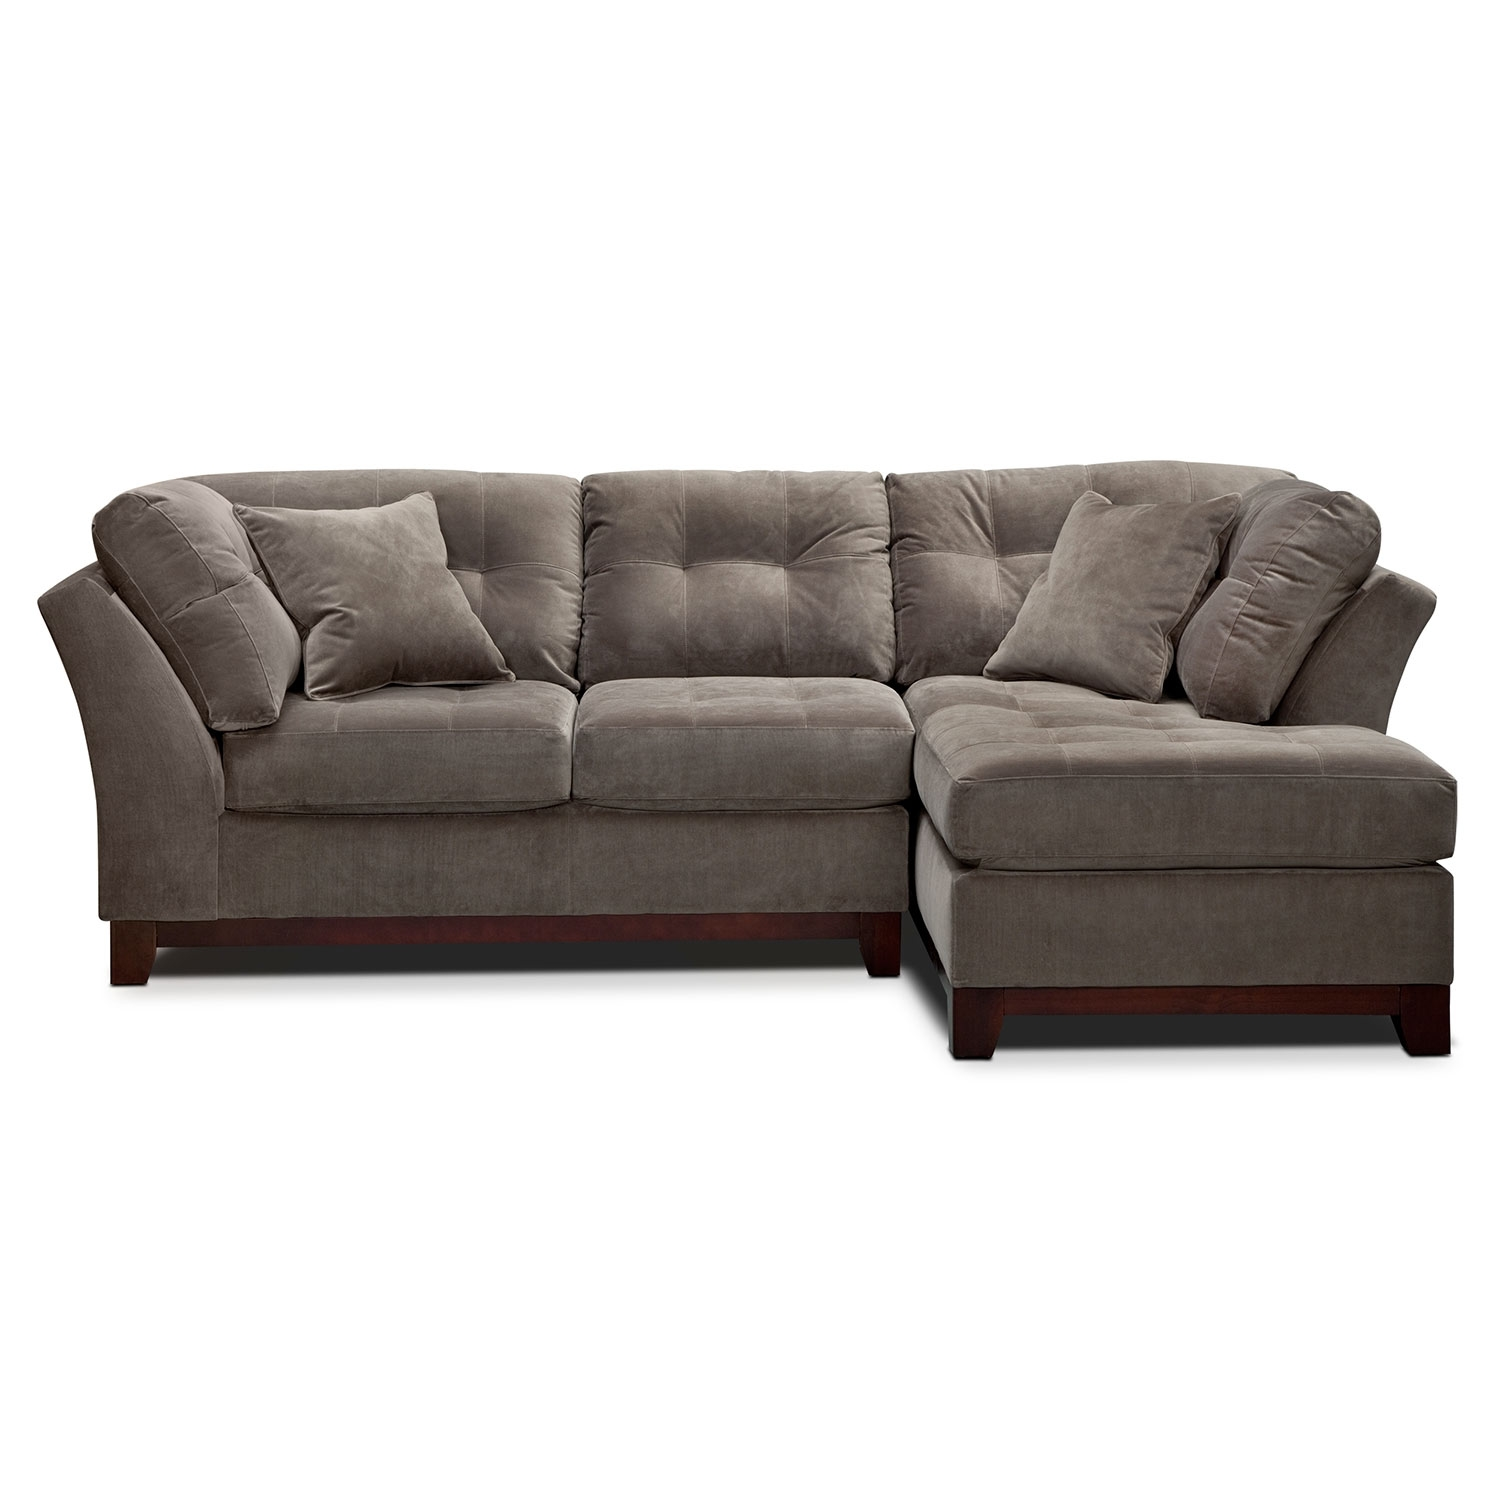 Breathtaking sofa sectionals for home interior design with leather sectional sofa and sectional sleeper sofa